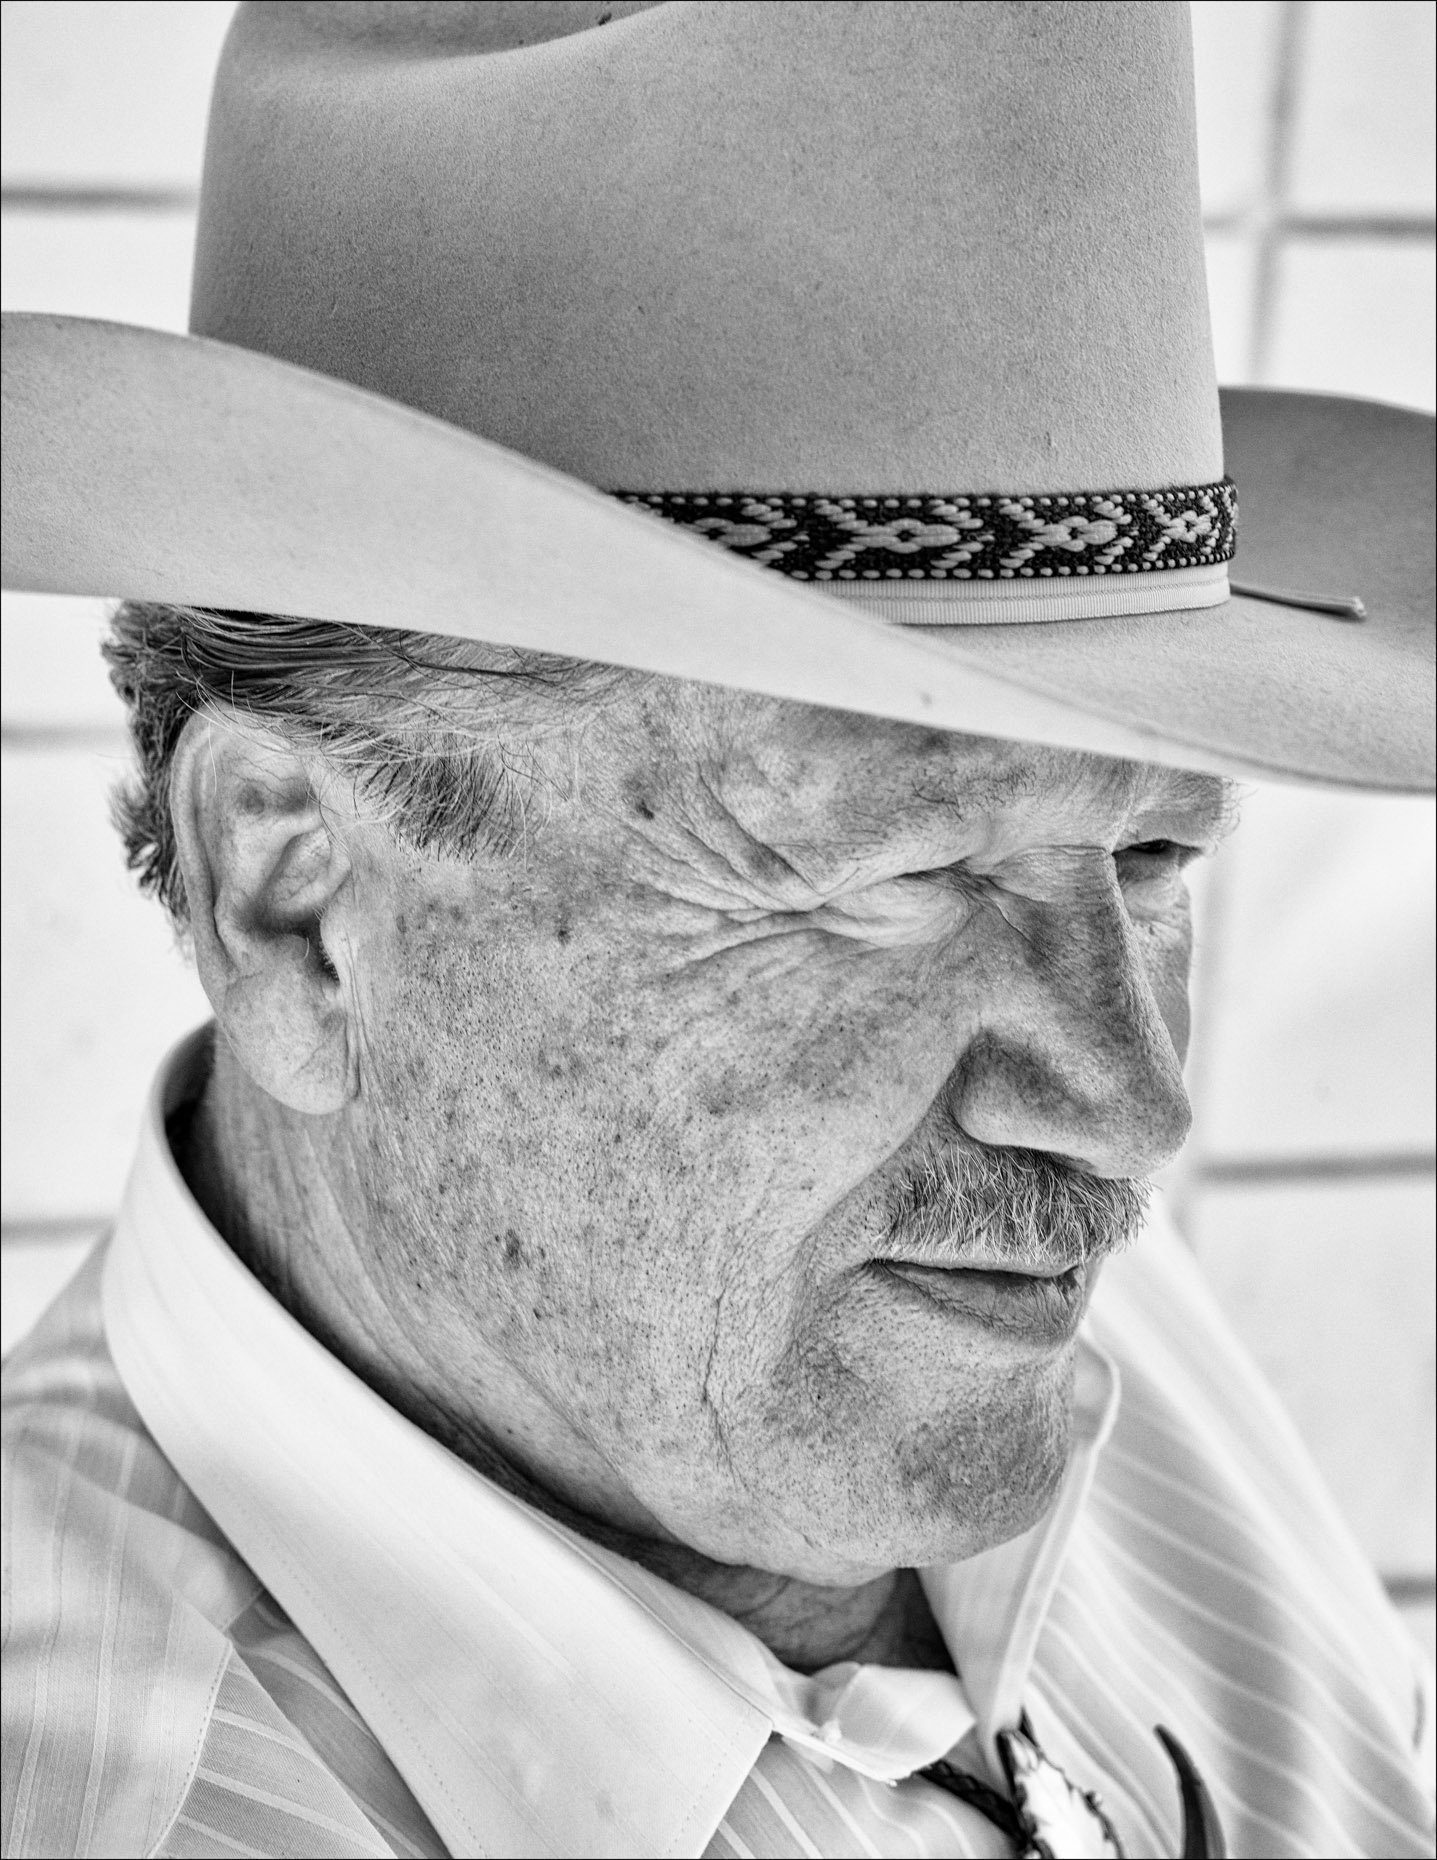 Senior Man with Cowboy Hat (Black and White) in Indio, CA.